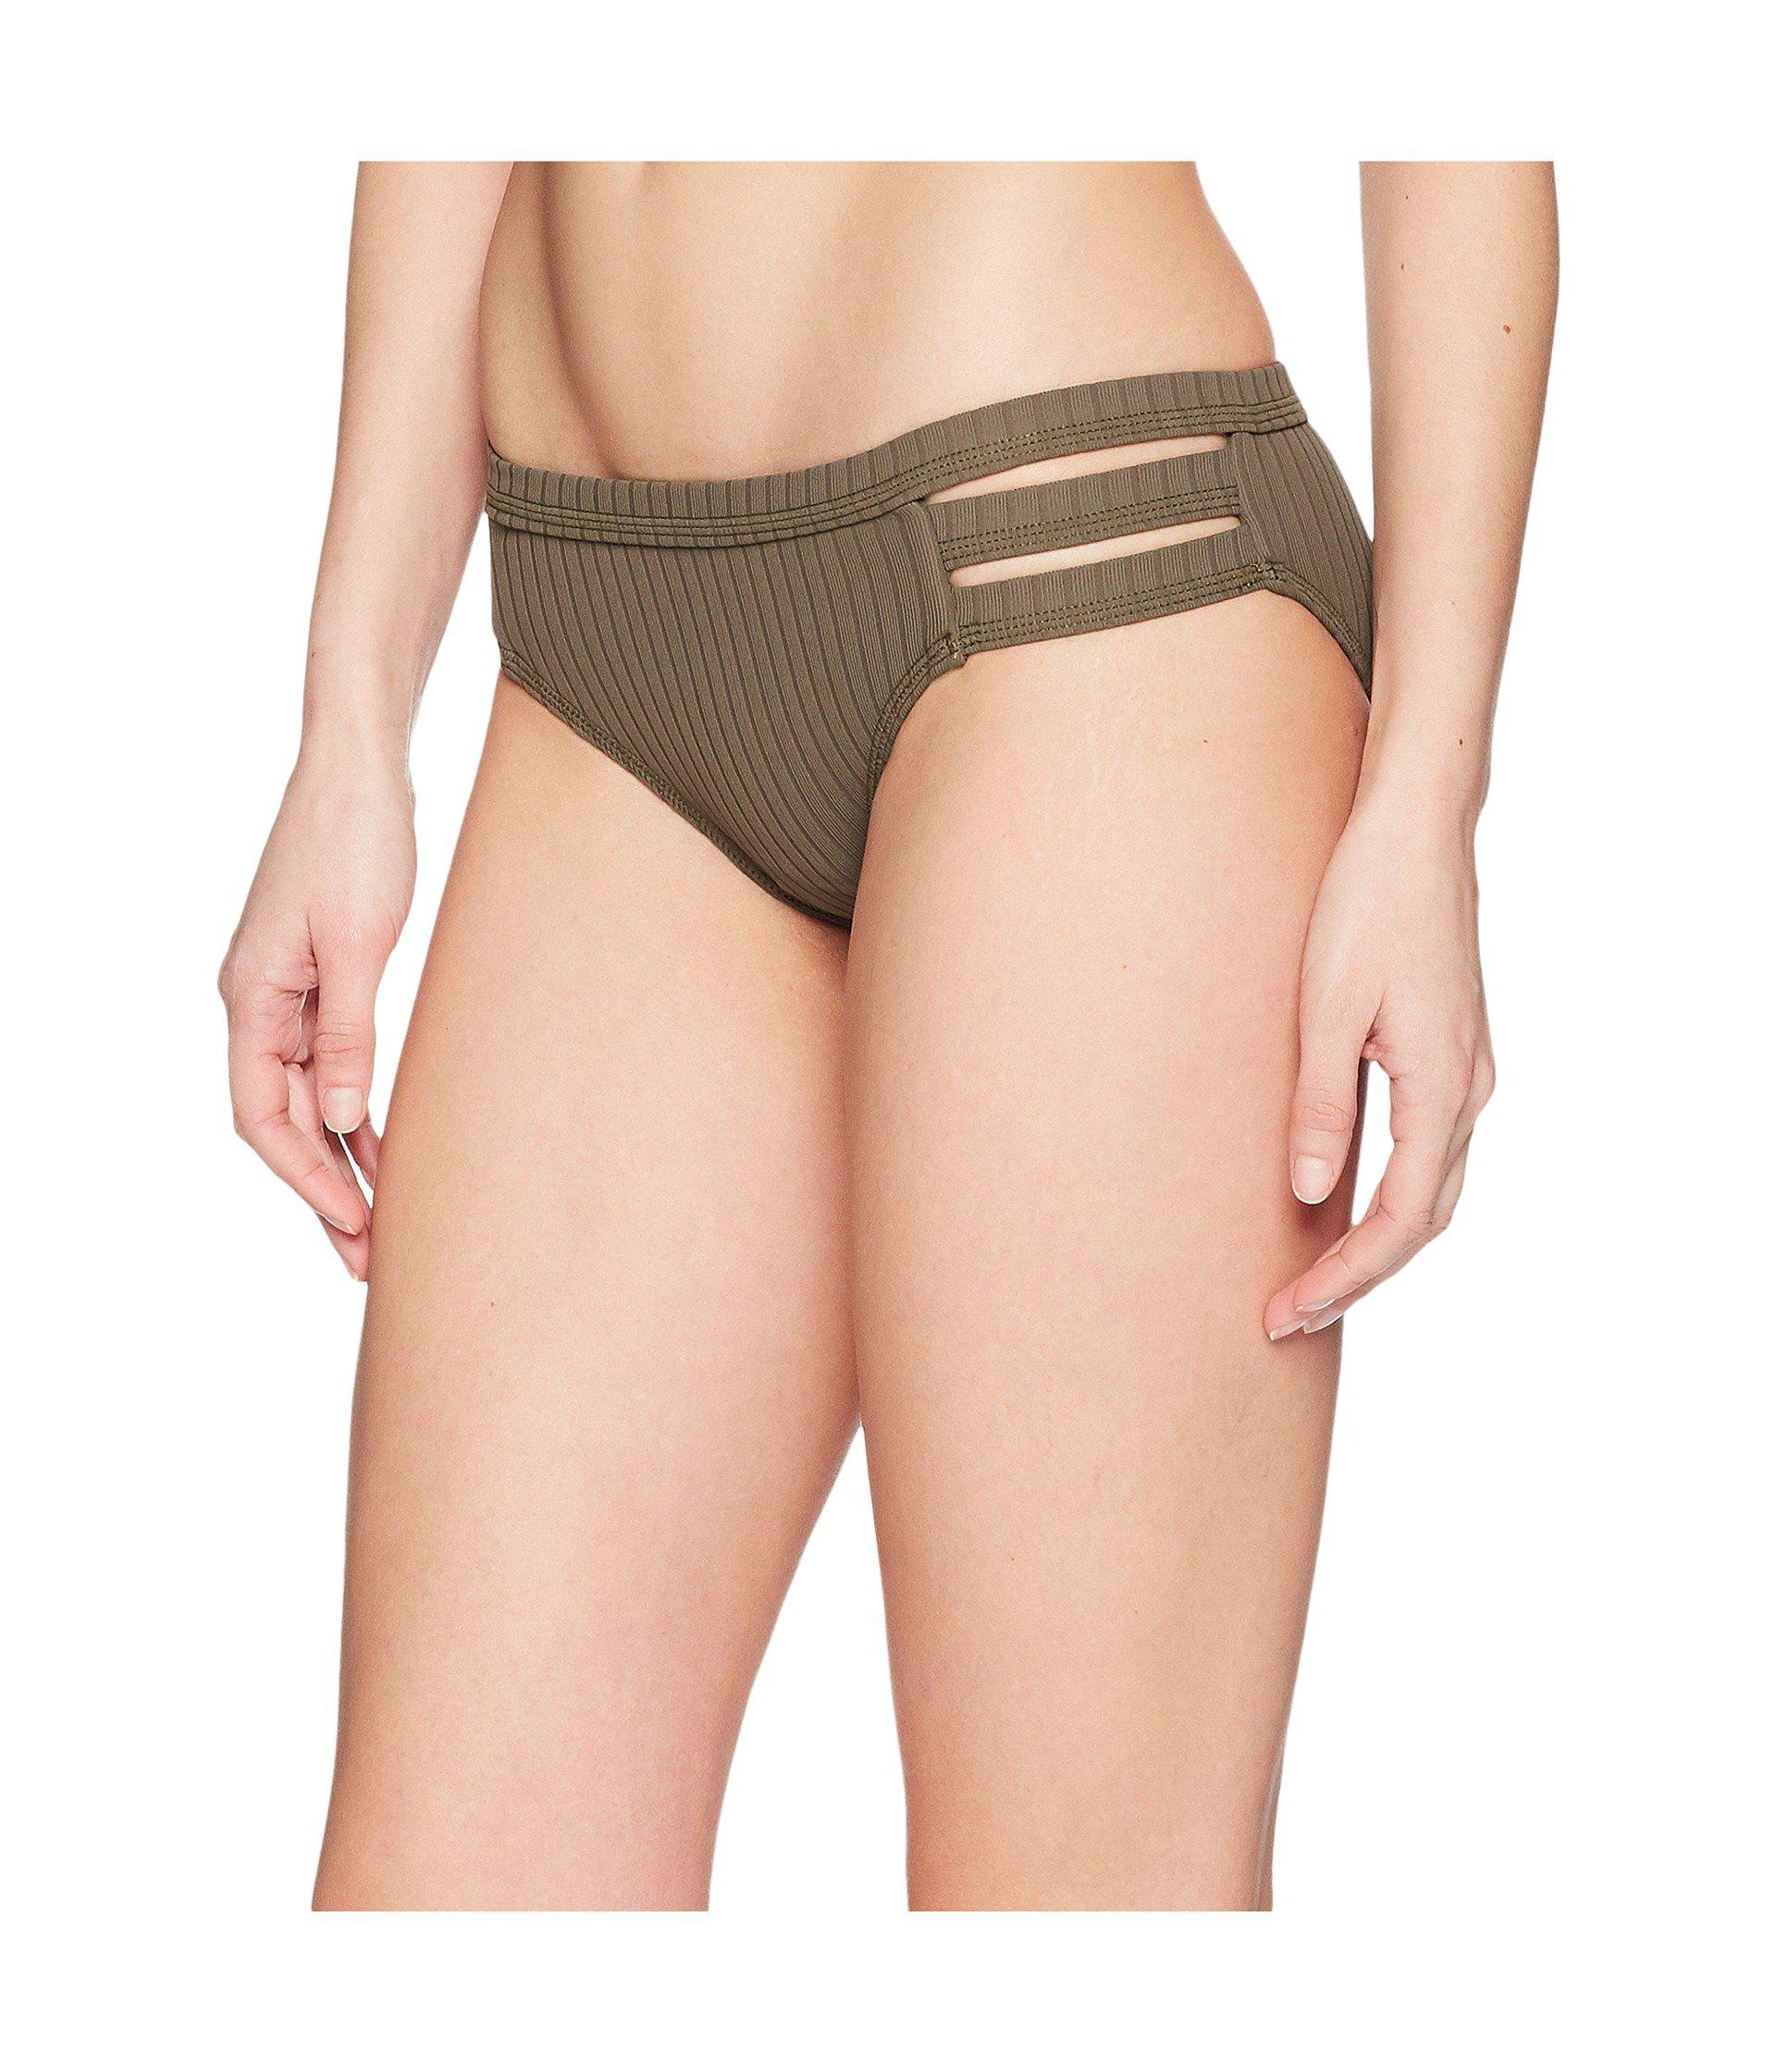 686ca9c9d46 Lyst - Seafolly Inka Rib Multi Strap Hipster Bottoms in Green - Save 2%